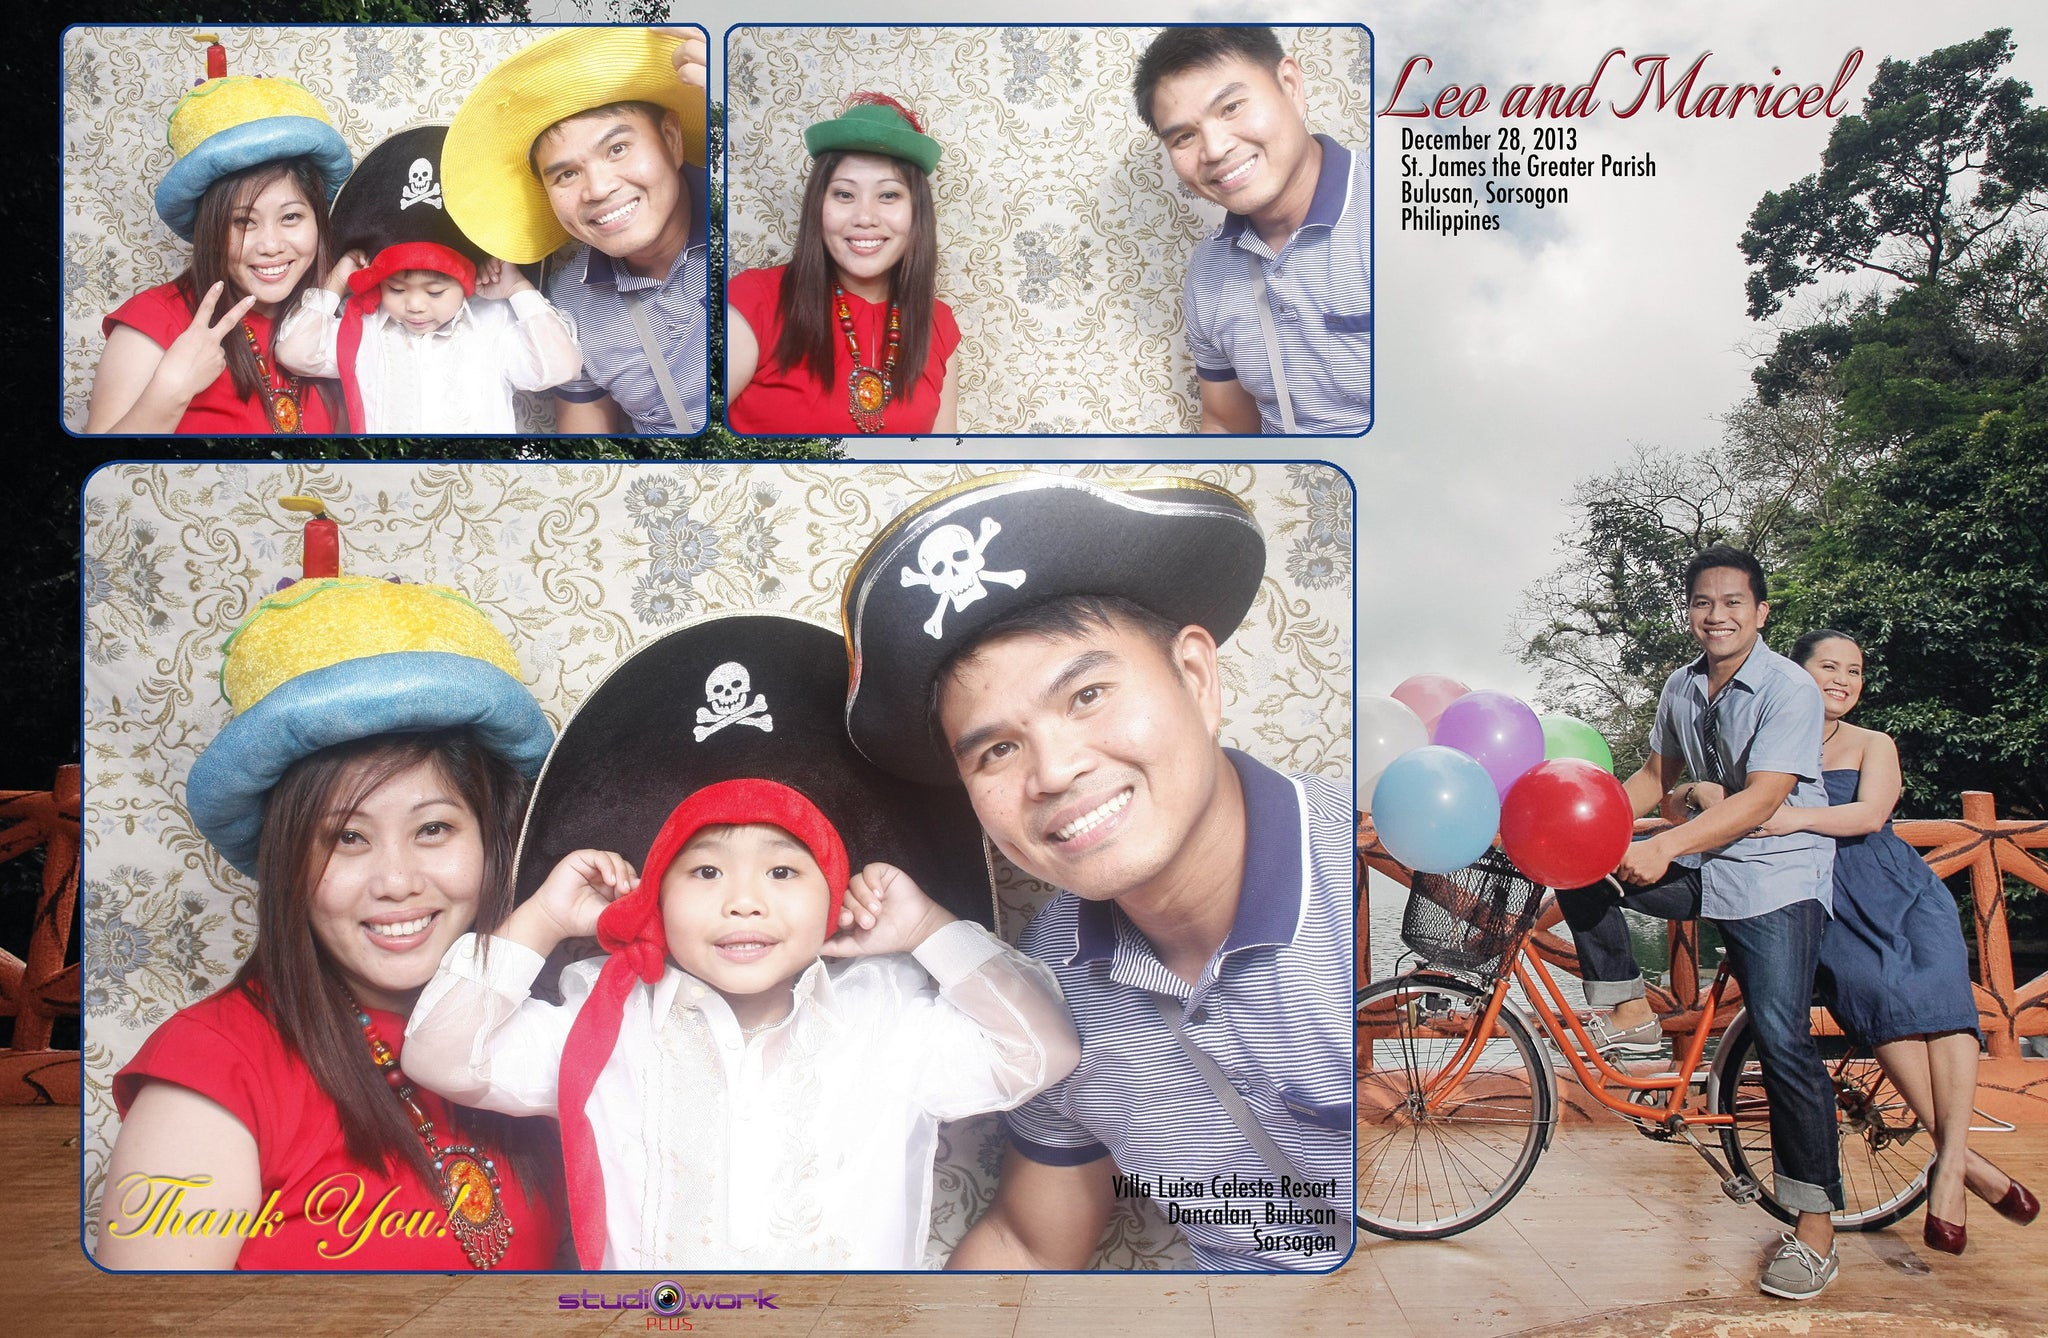 Photobooth Rental with Props and Backdrop & Unlimited Prints